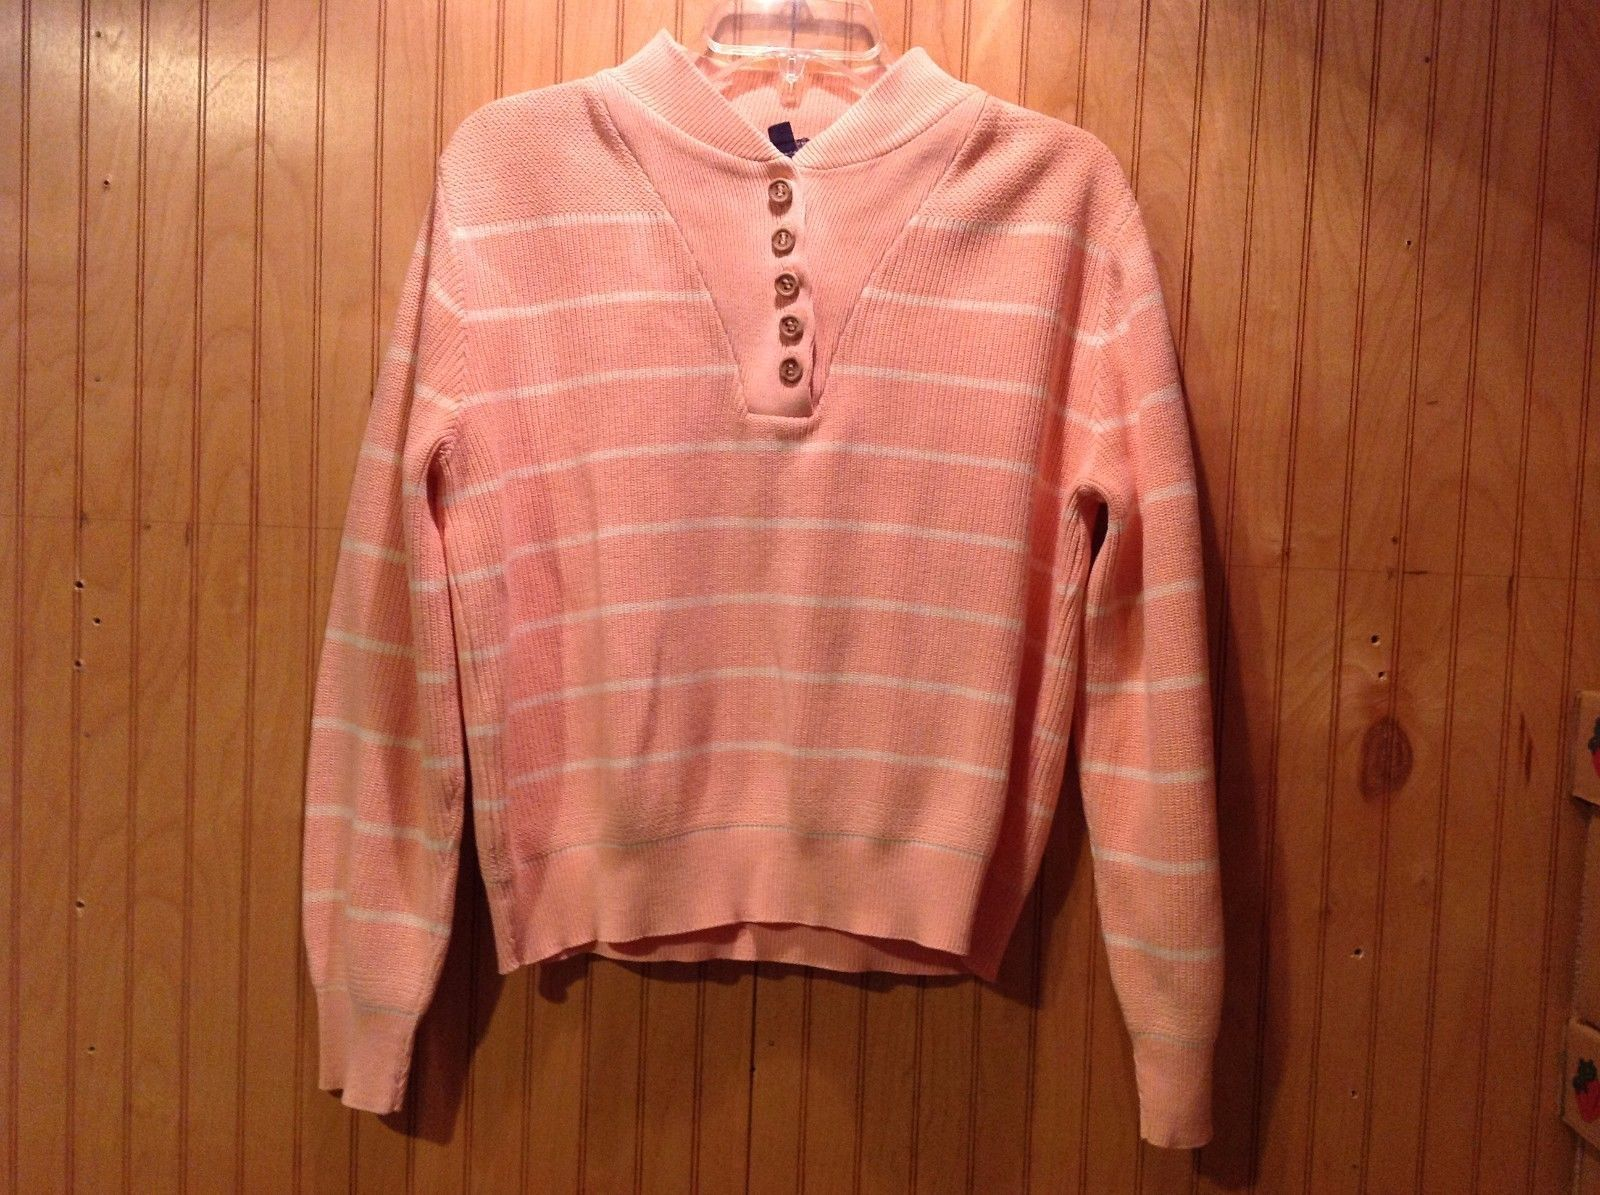 Pink Woven Long Sleeve Sweater Land's End V-Neck with Buttons Striped